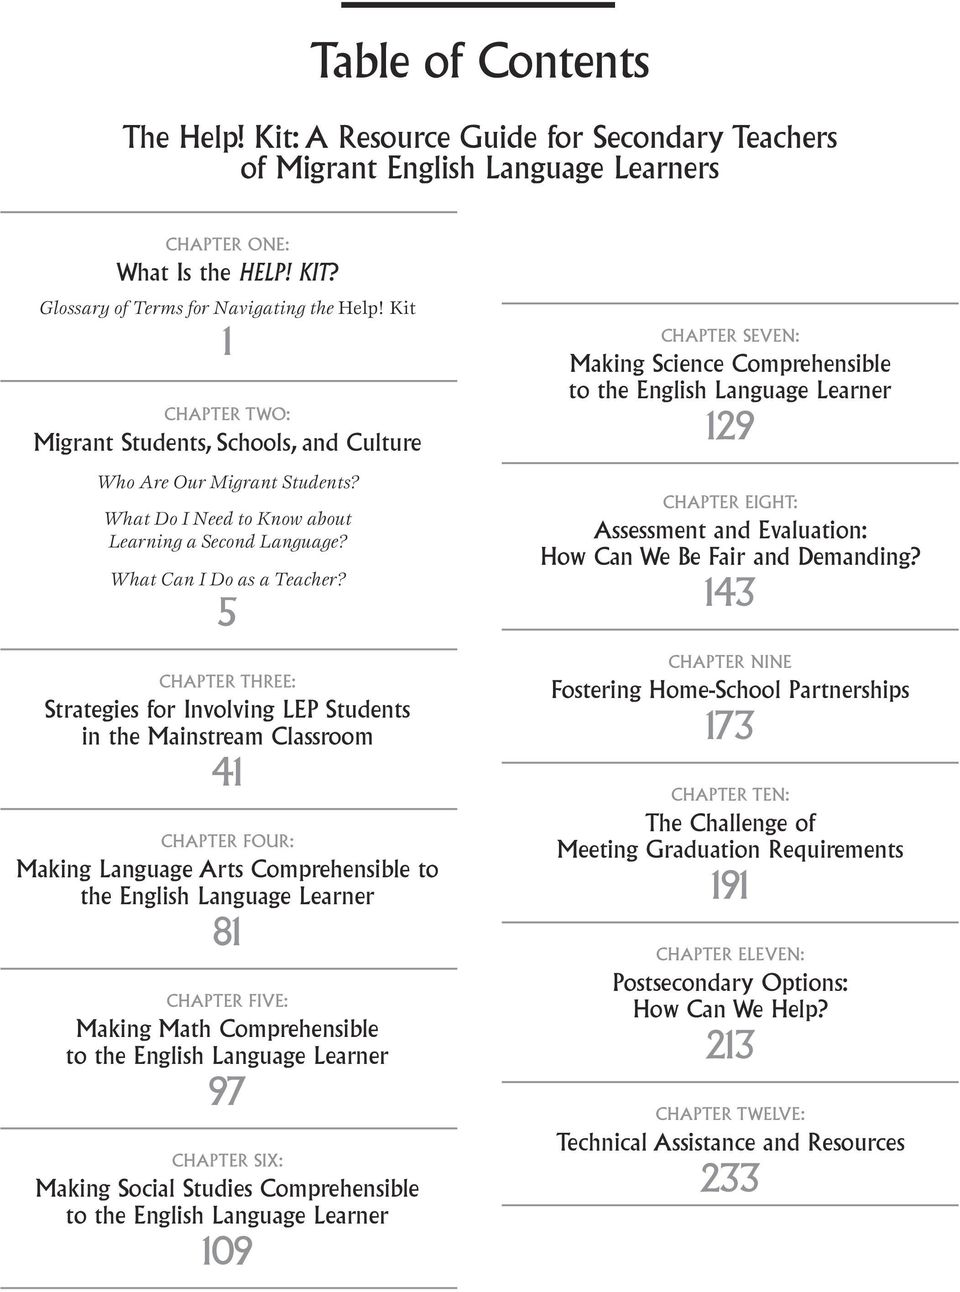 5 CHAPTER THREE: Strategies for Involving LEP Students in the Mainstream Classroom 41 CHAPTER FOUR: Making Language Arts Comprehensible to the English Language Learner 81 CHAPTER FIVE: Making Math